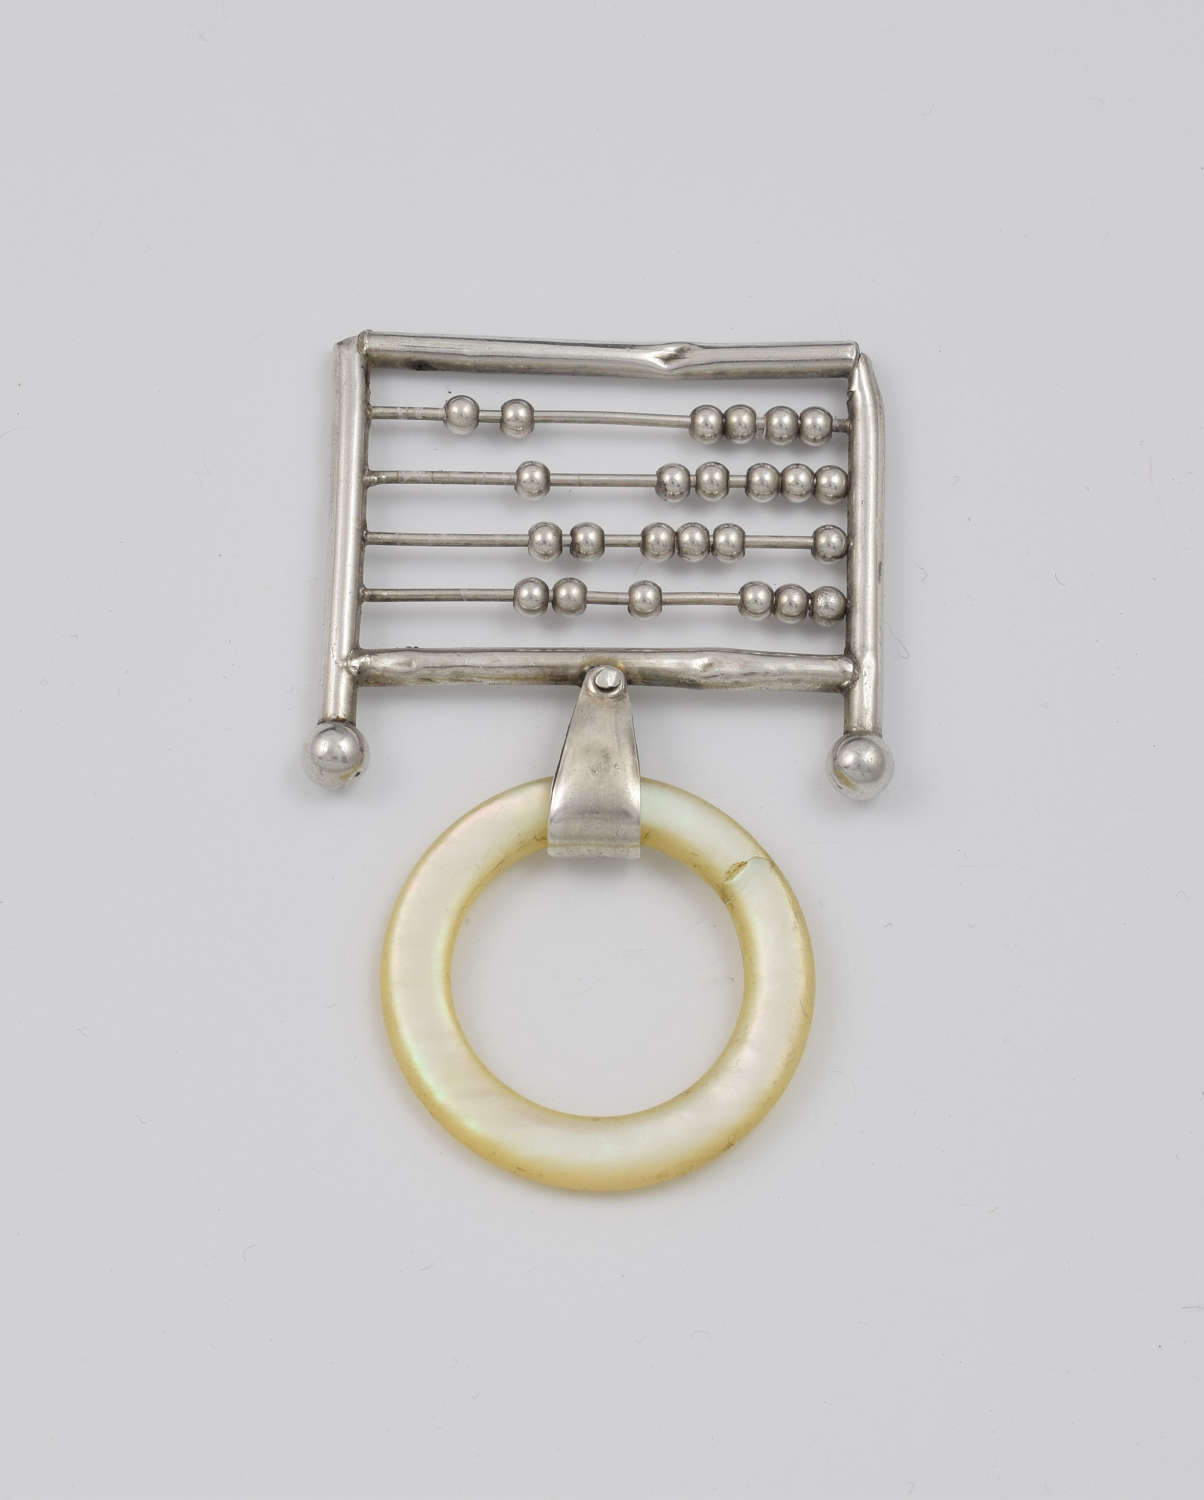 Unusual Antique Novelty Silver Abacus Teething Ring